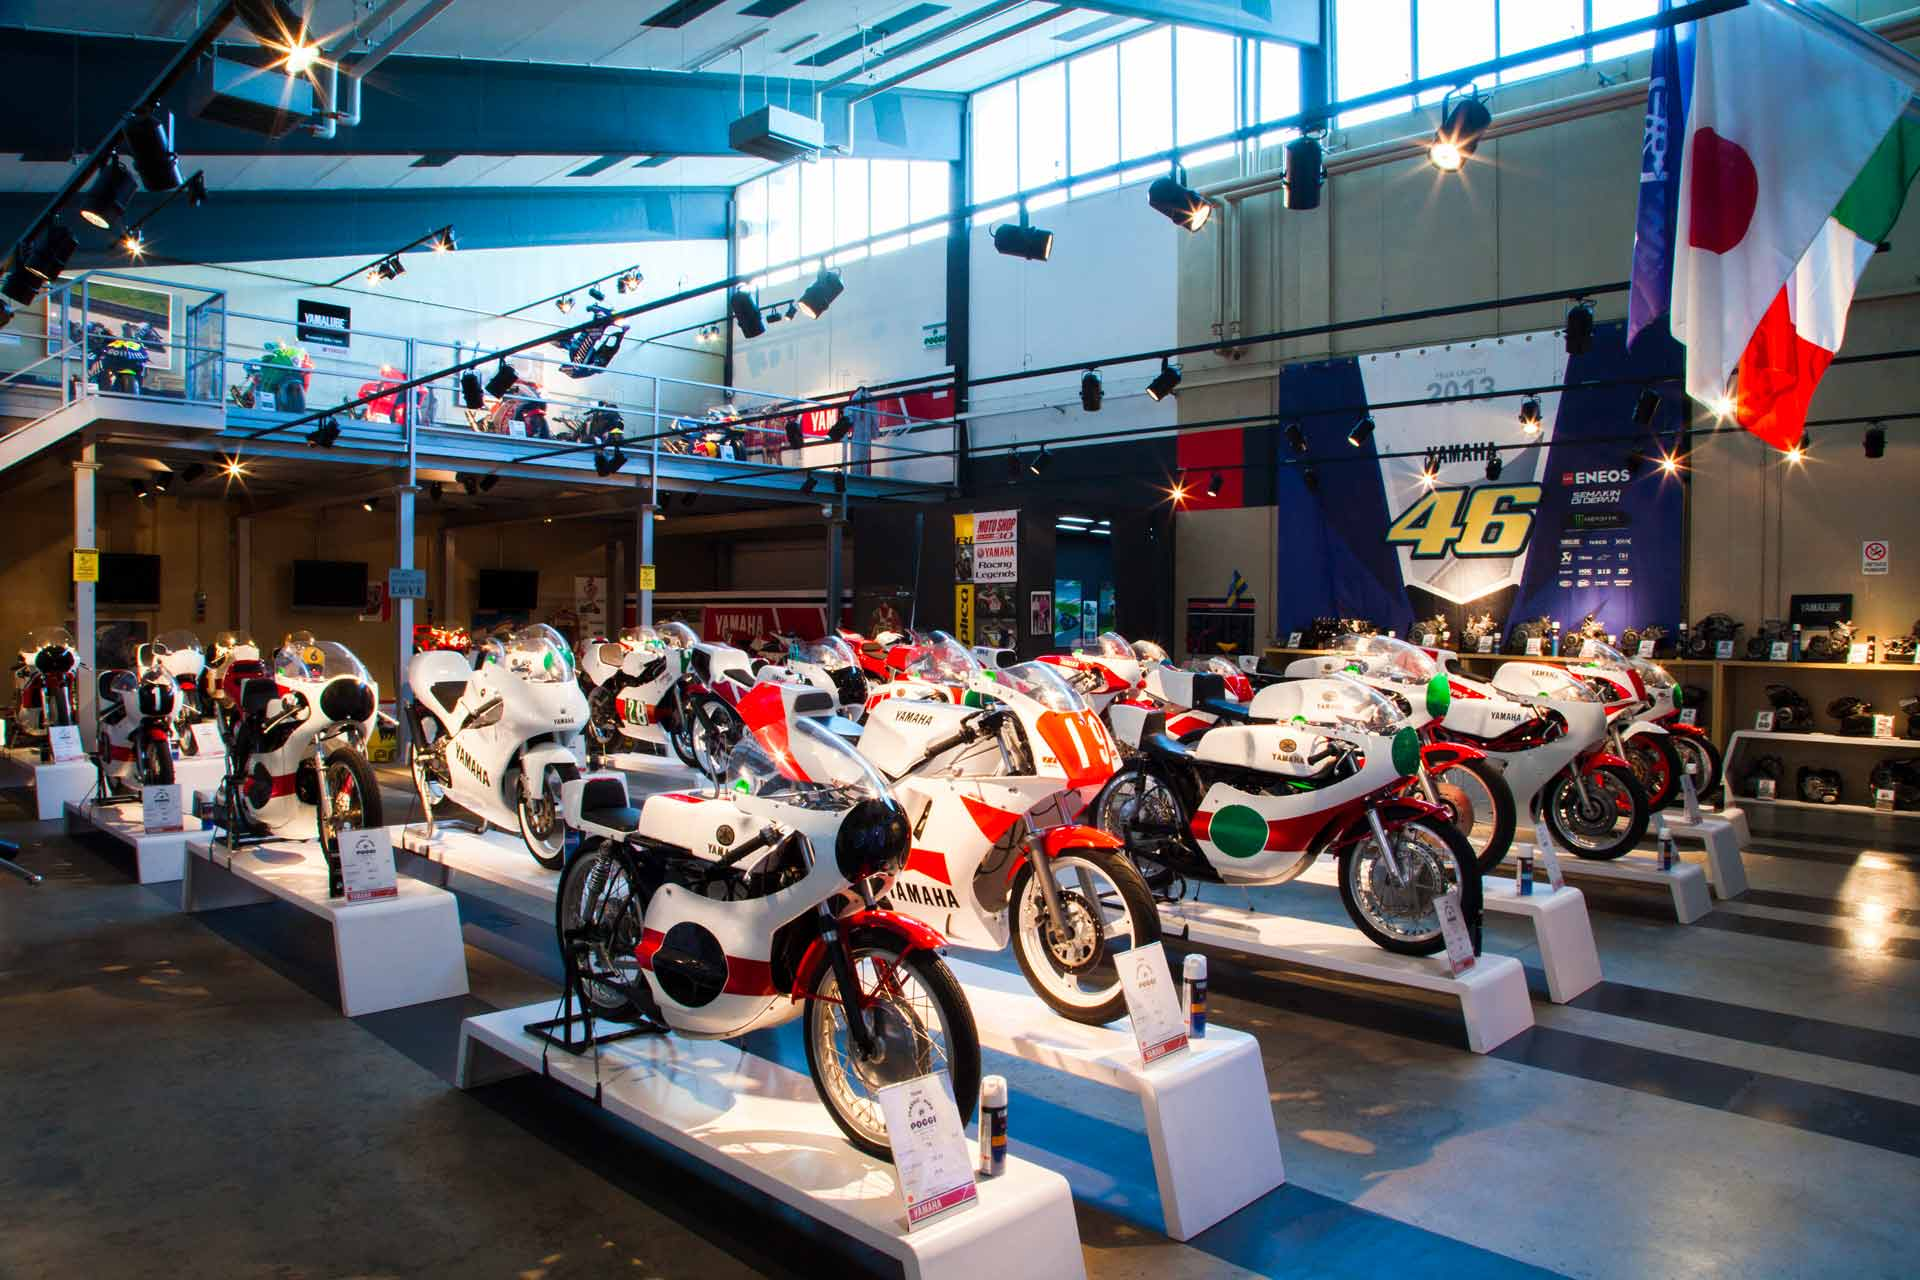 MotorValley private car motorcycles collections